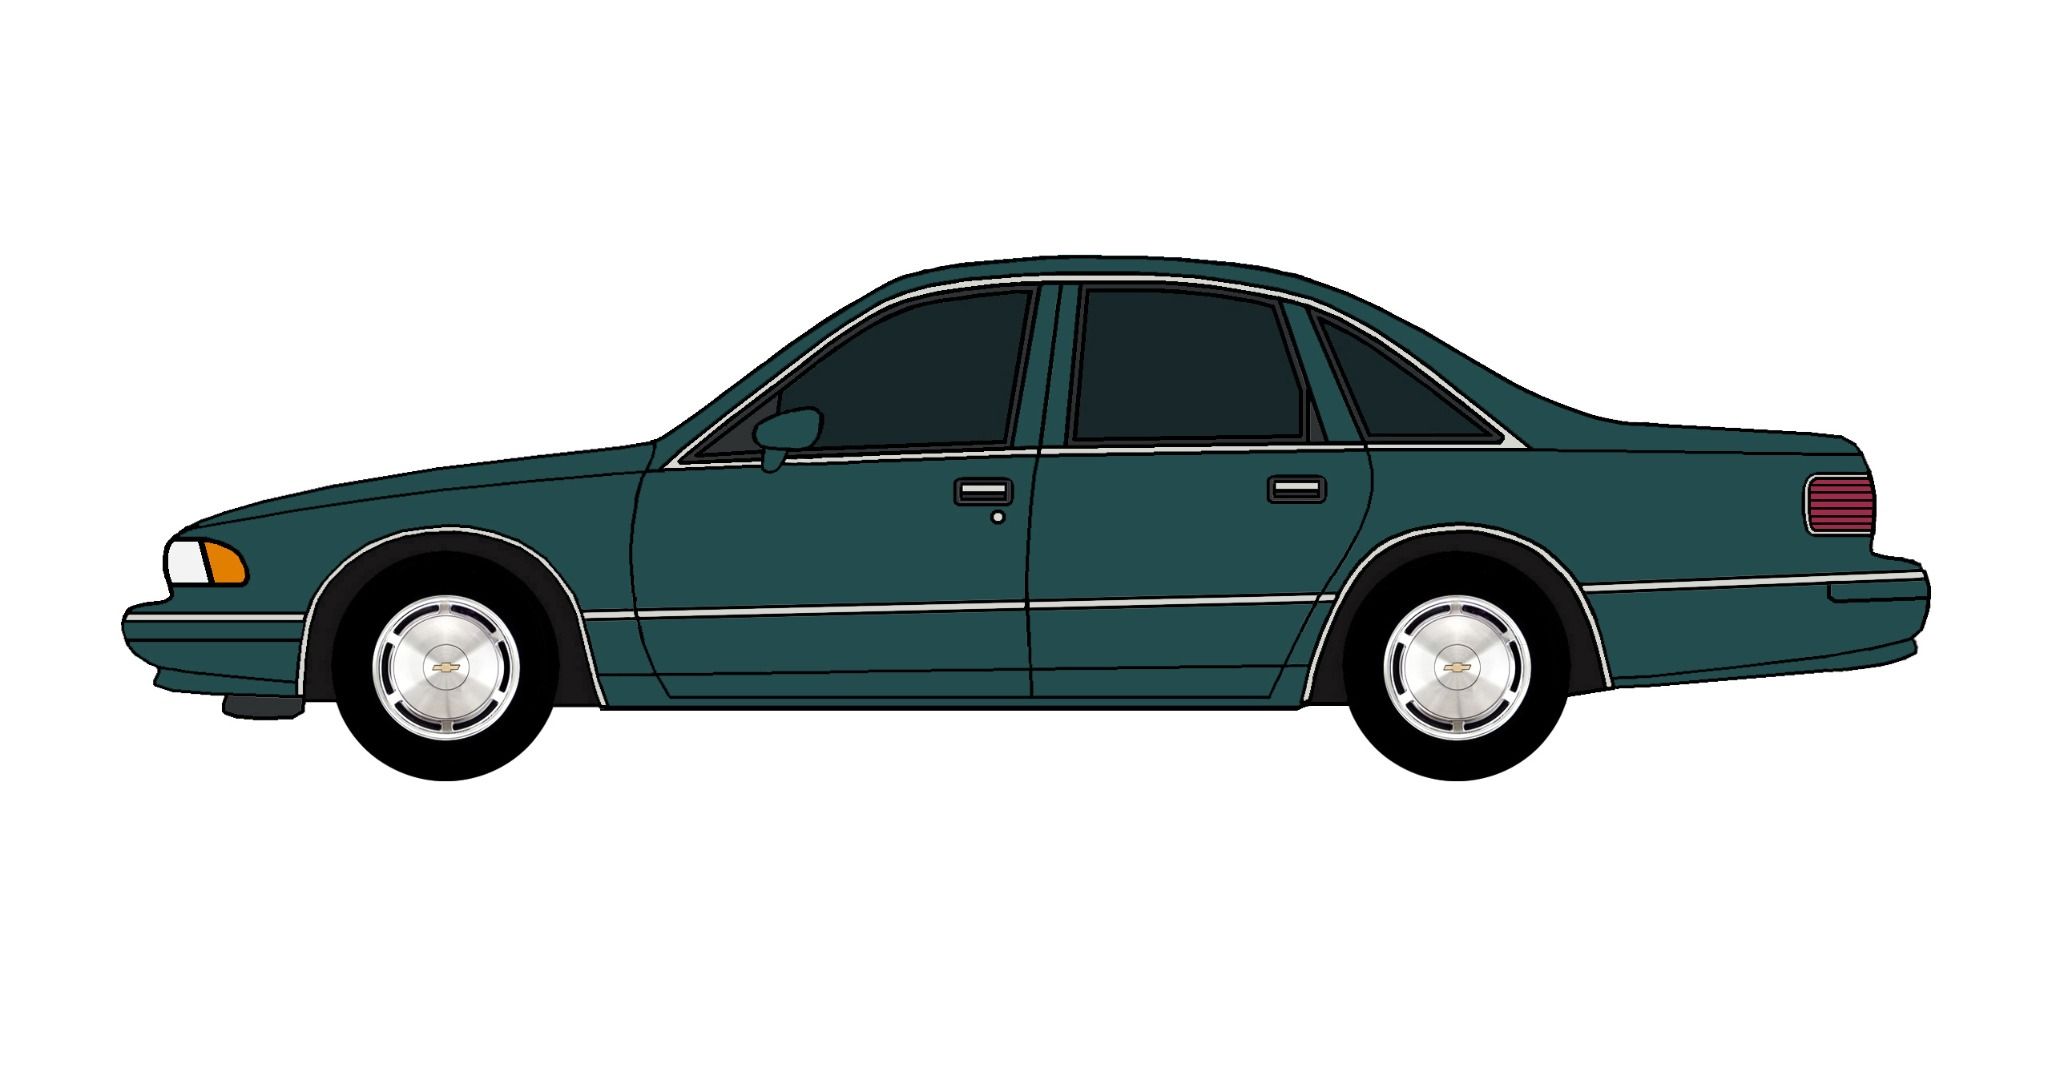 1994 Chevy Caprice TEAL